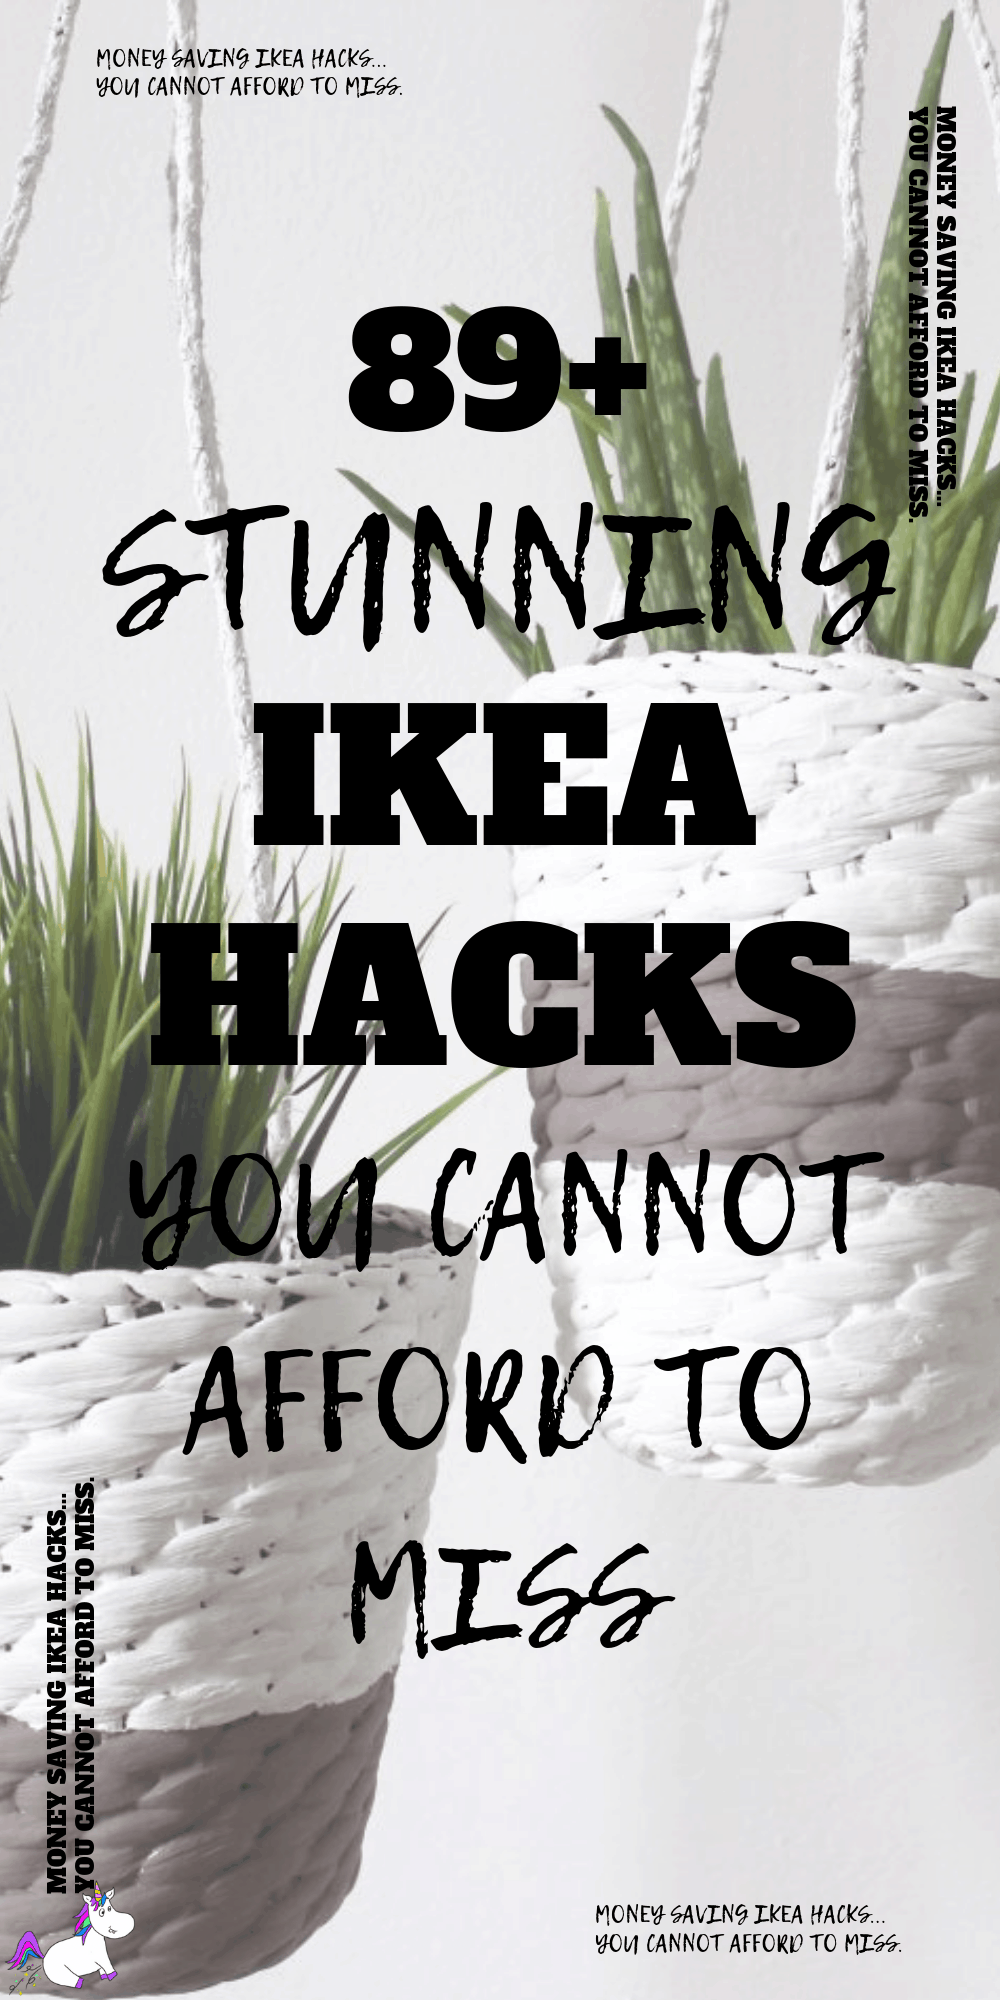 89+ Stunning Ikea Hacks You Cannot Afford To Miss | diy home decor | Creative home decor | Via: https://themummyfront.com #themummyfront #ikeahacks #creativehomedecor #homedecoronabudget